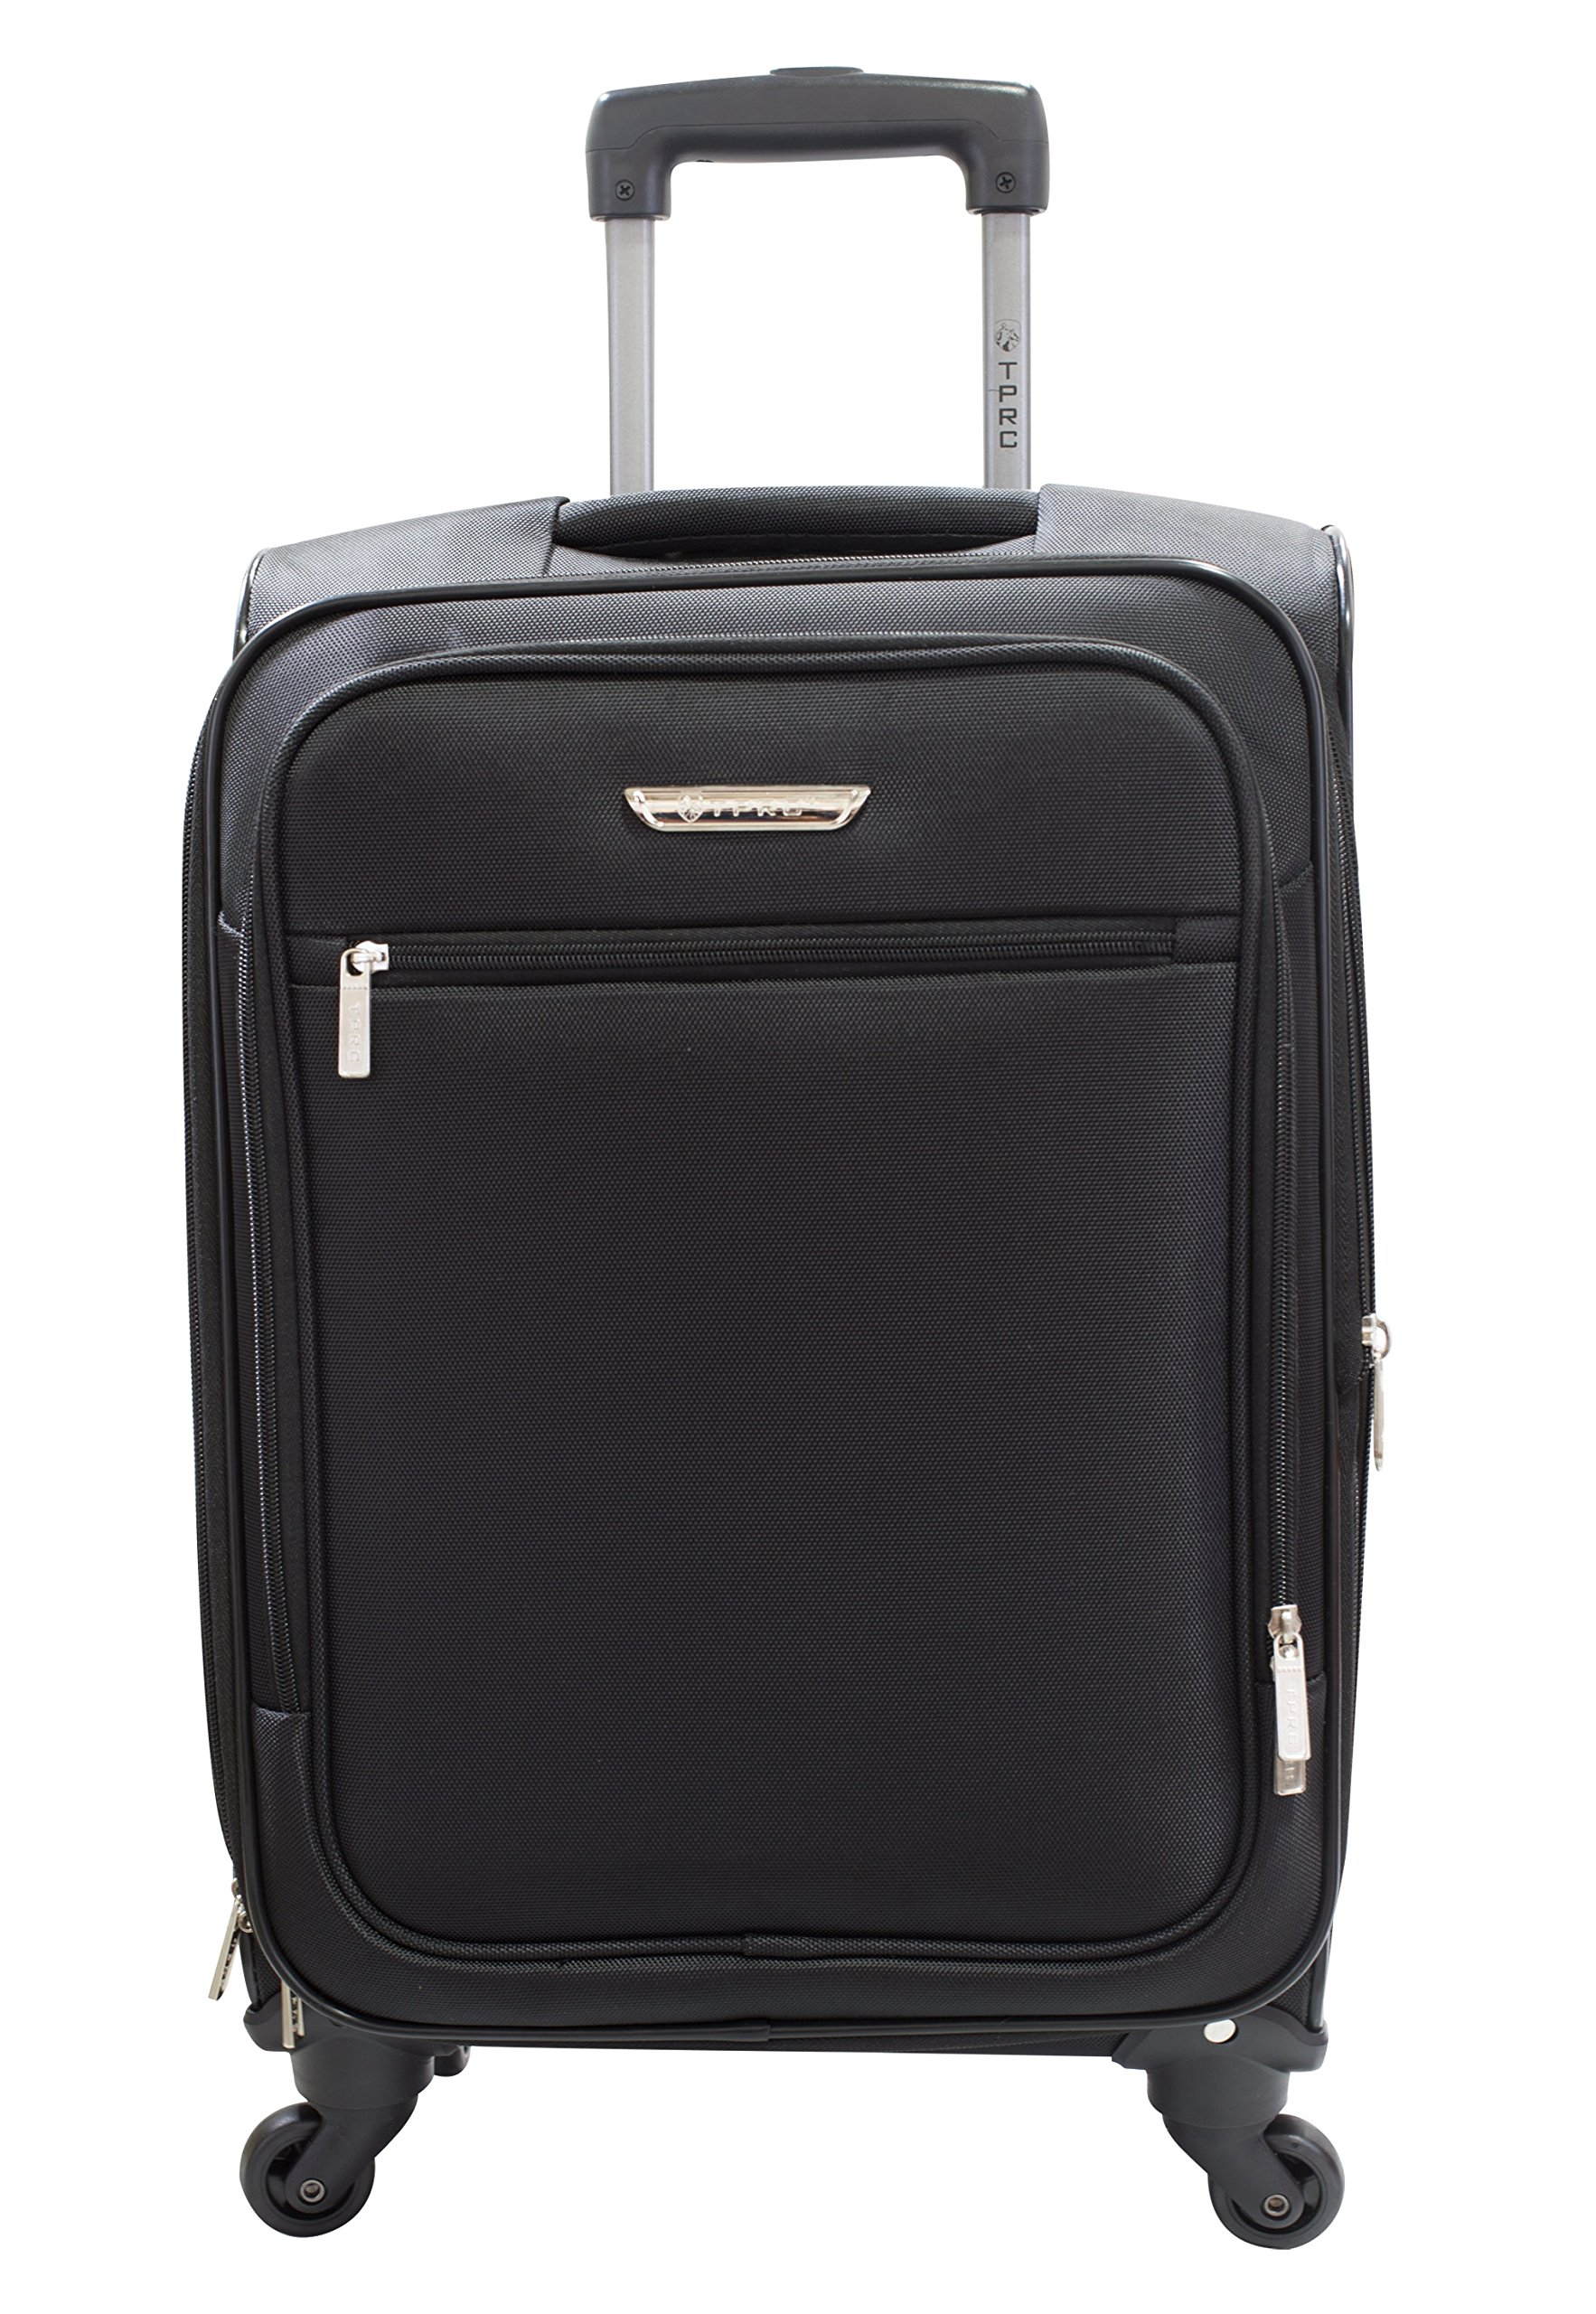 TPRC TPRC 20'' Sabre Carry-On Luggage with Side USB Port